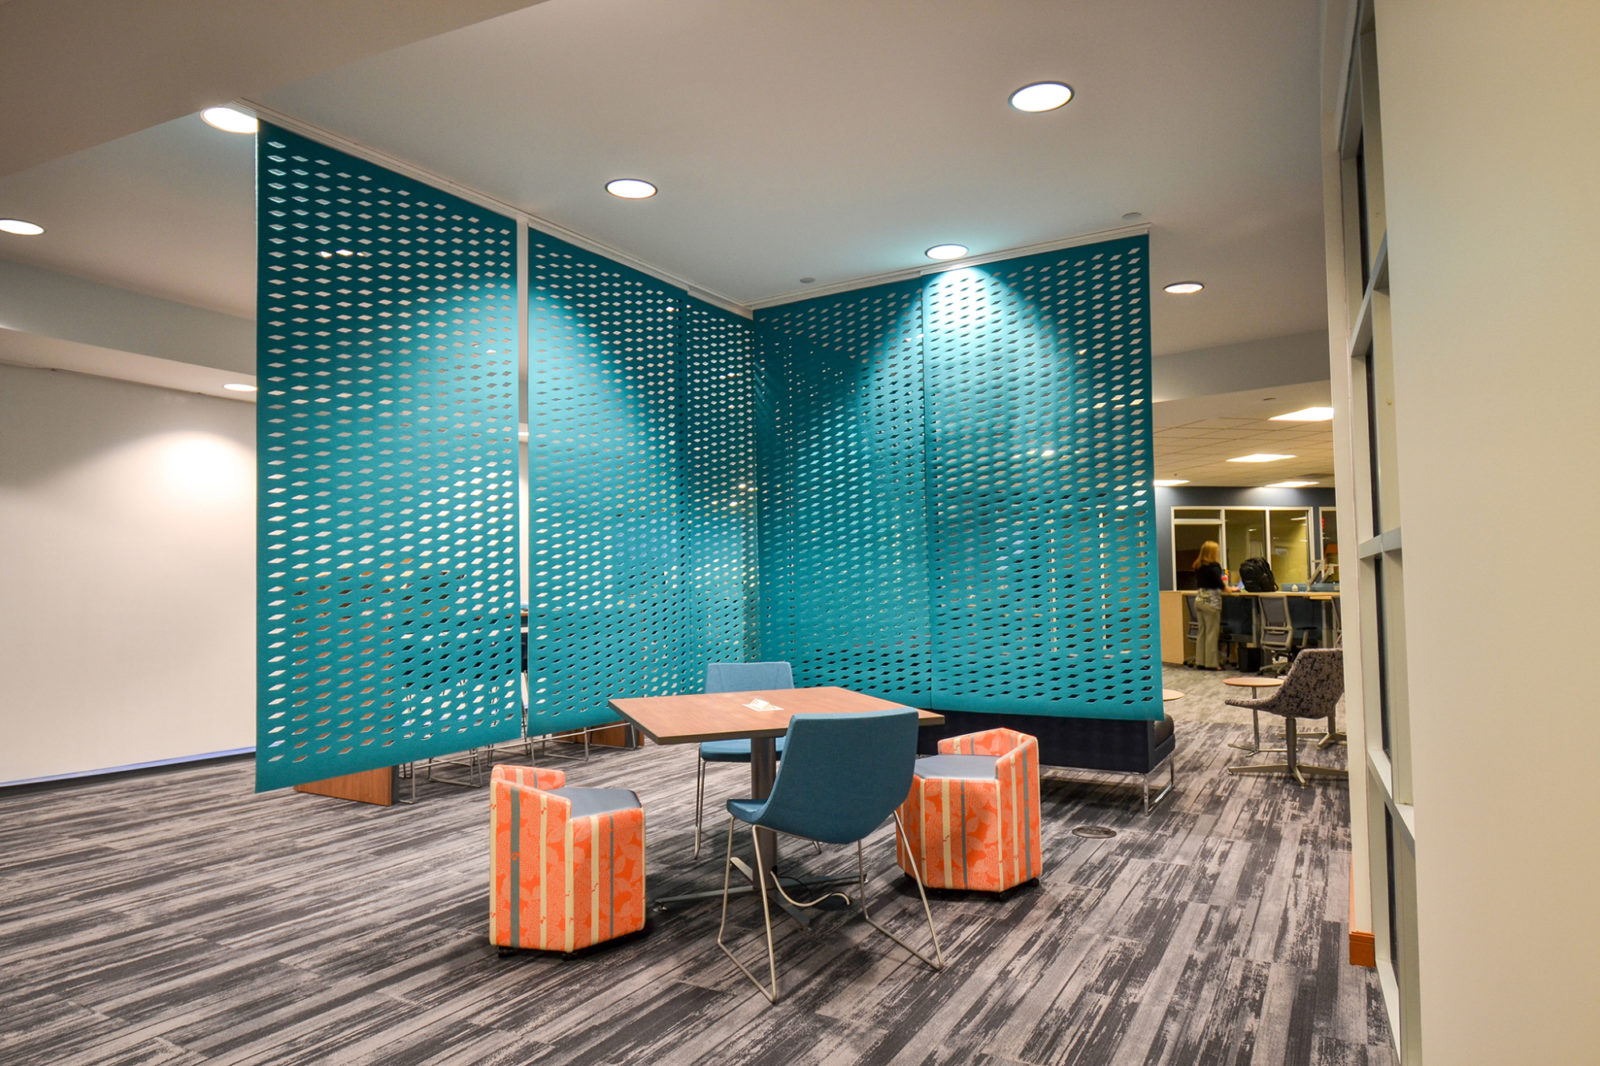 Prof. Services Firm Project Highlight: divider partition wall and table space